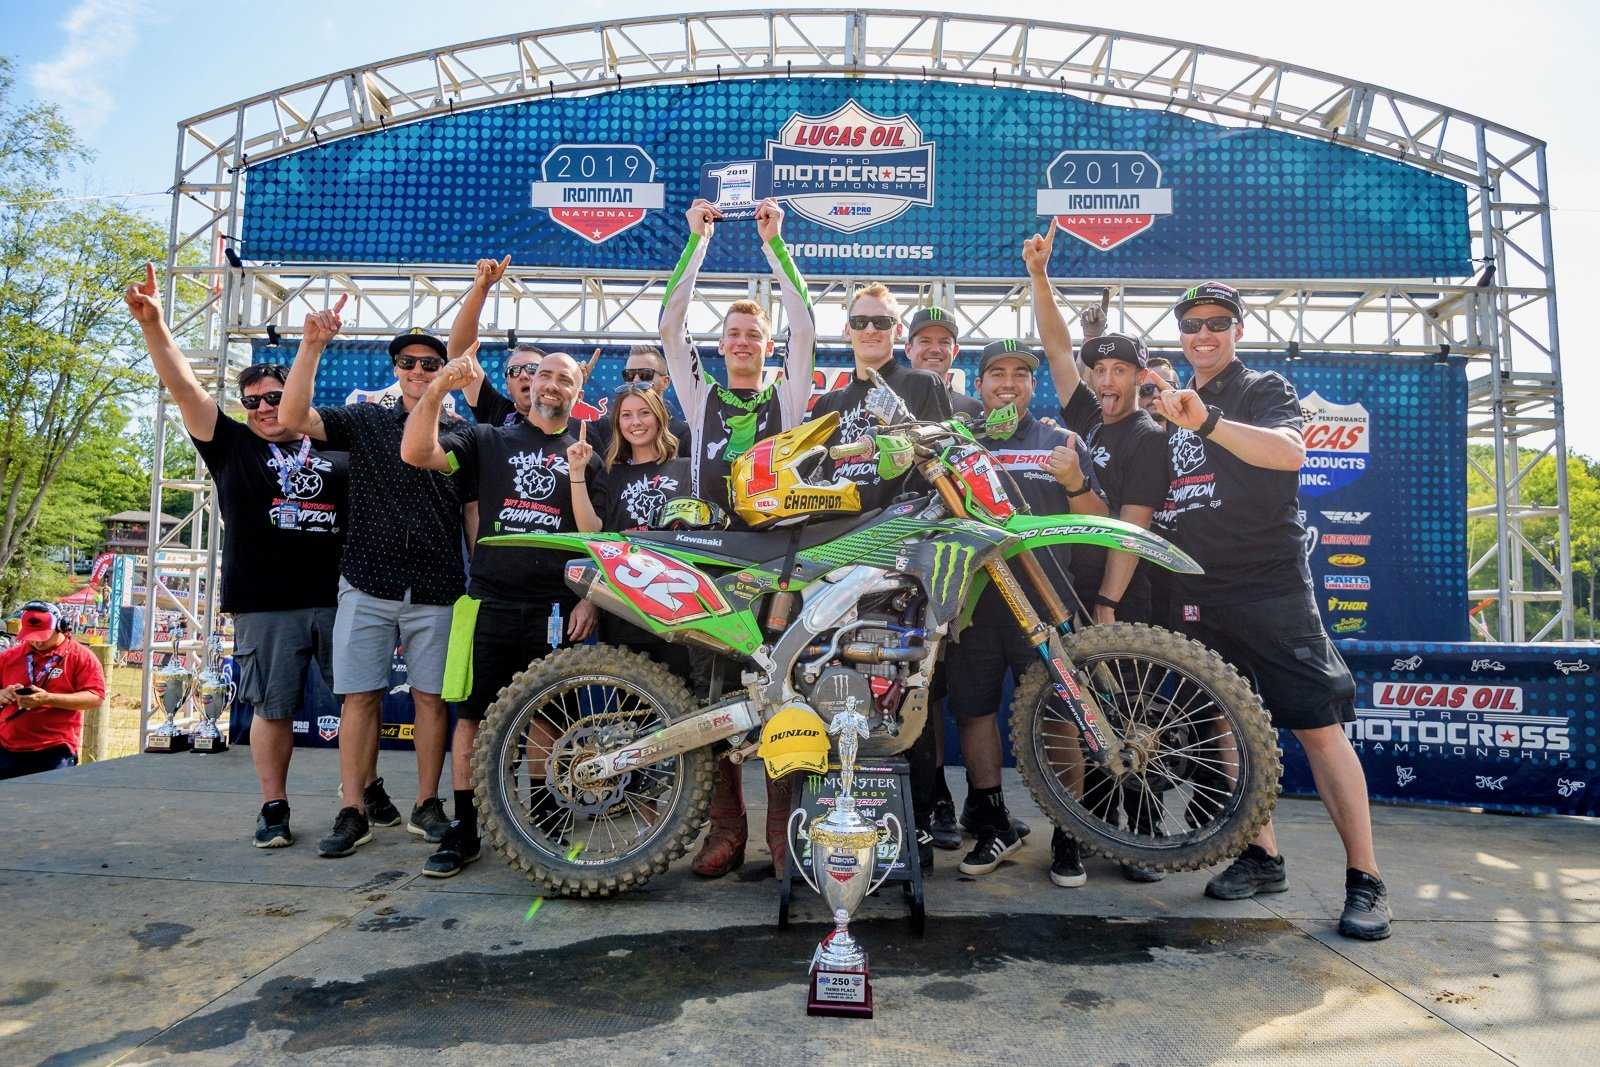 Cianciarulo, JE Pistons Wrap Up Pro Motocross Championship at Ironman National